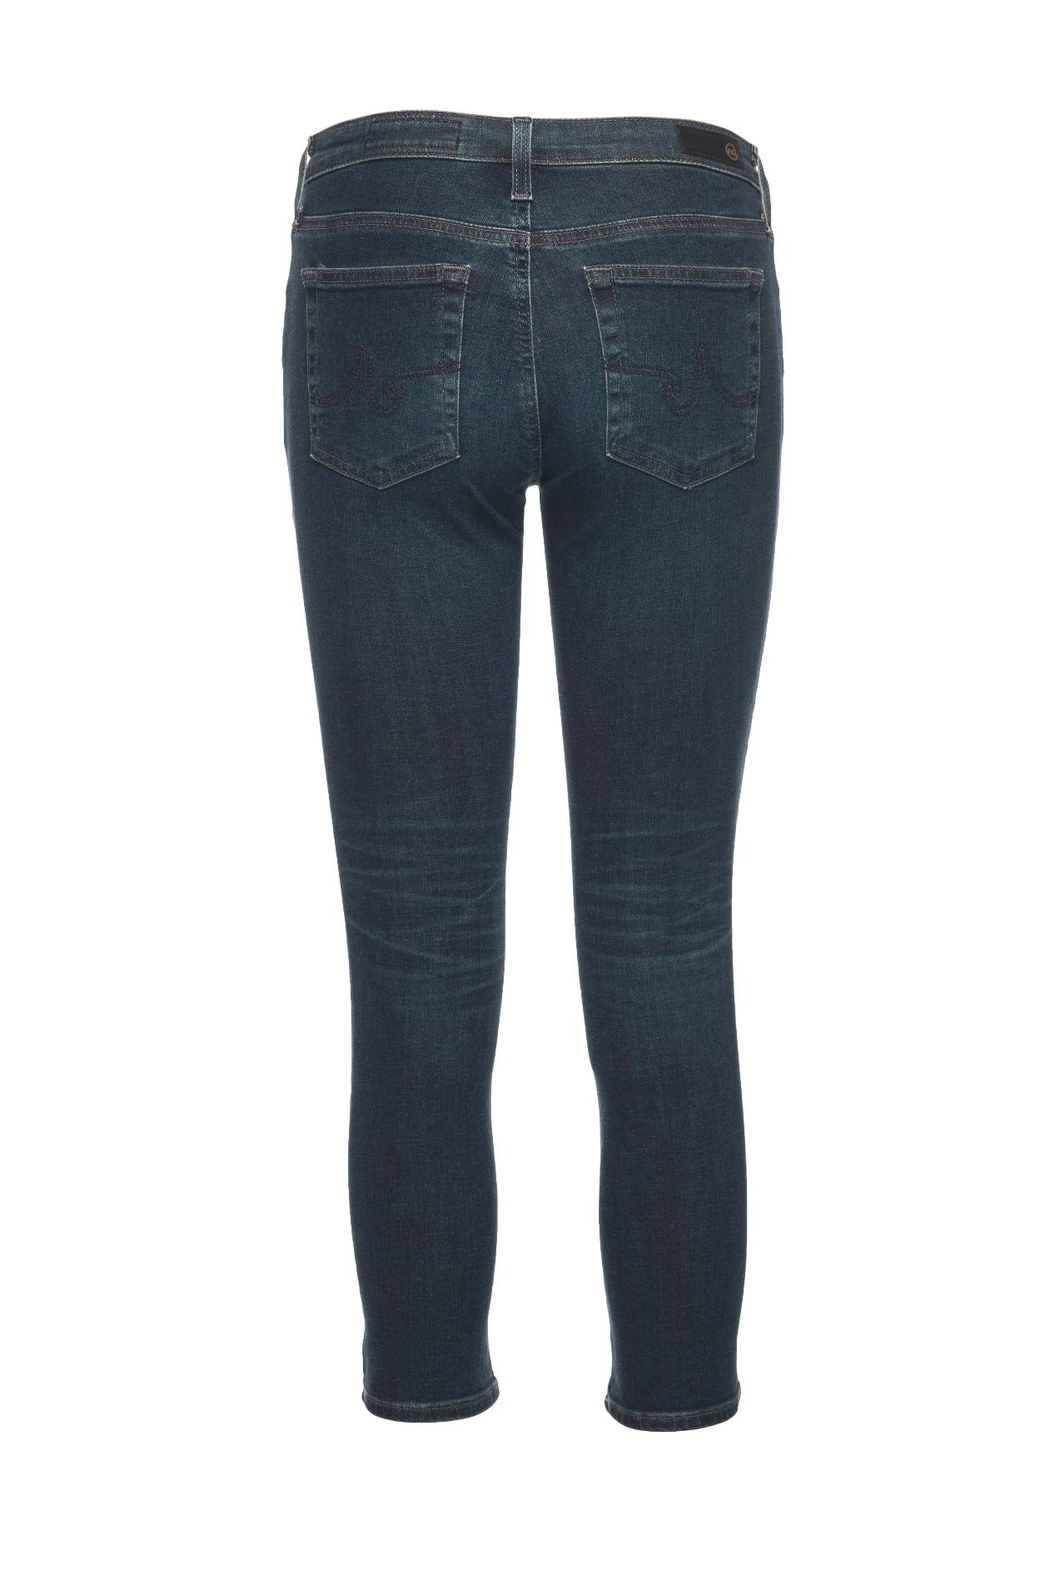 AG Adriano Goldschmied The Prima Crop  Jean - Front Full Image